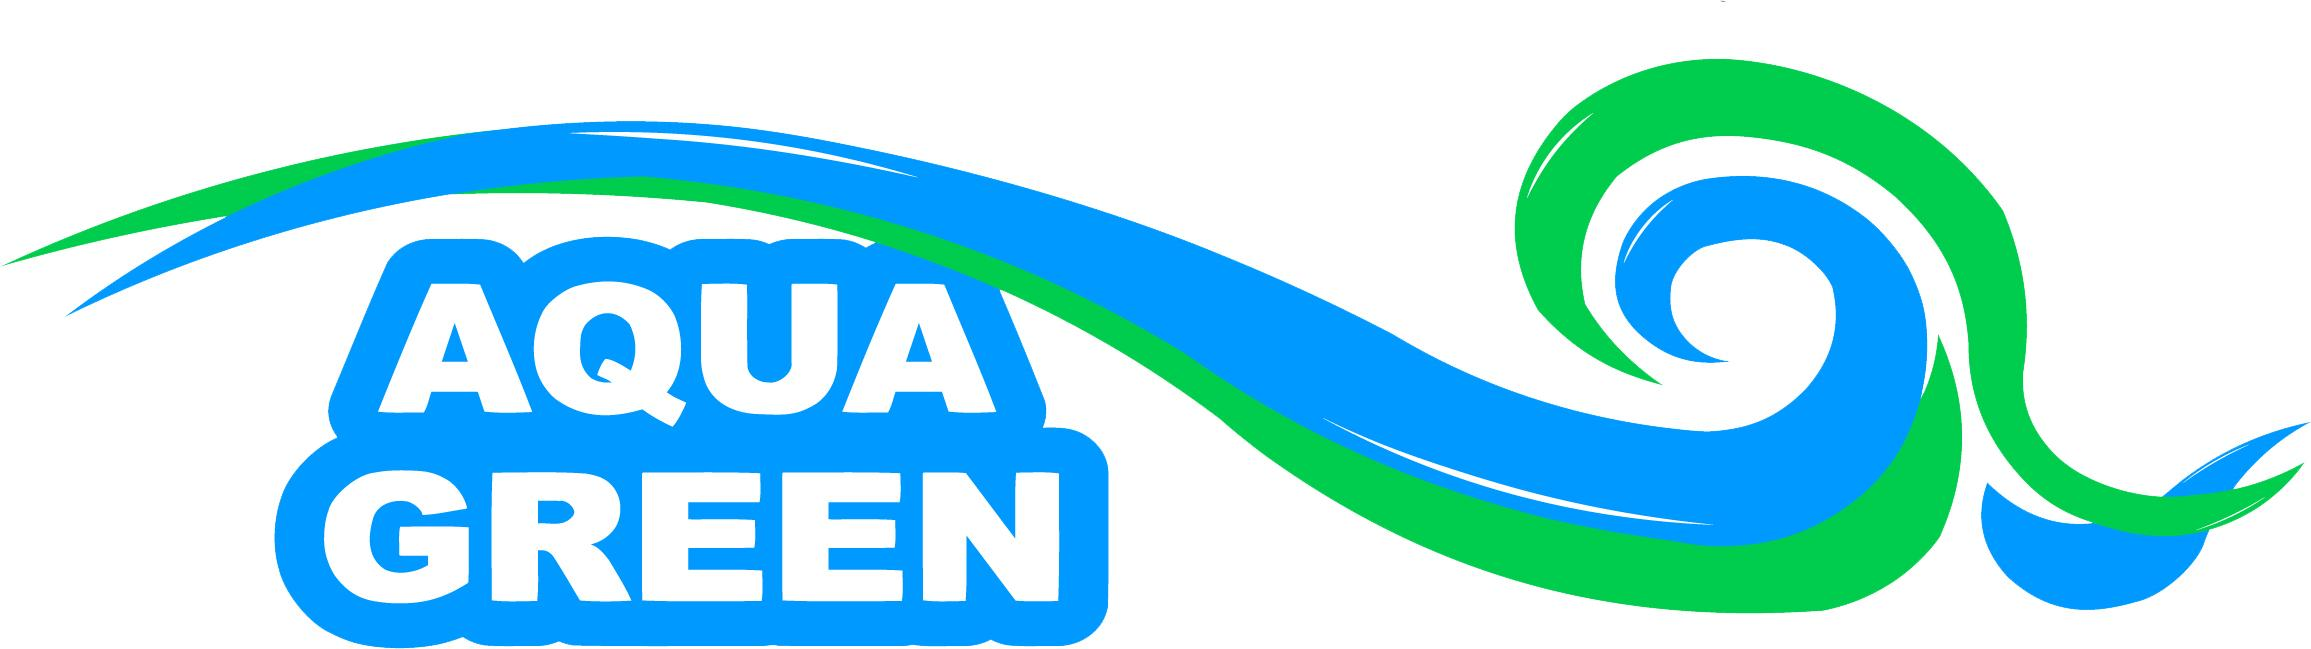 aquagreen logo_1_12